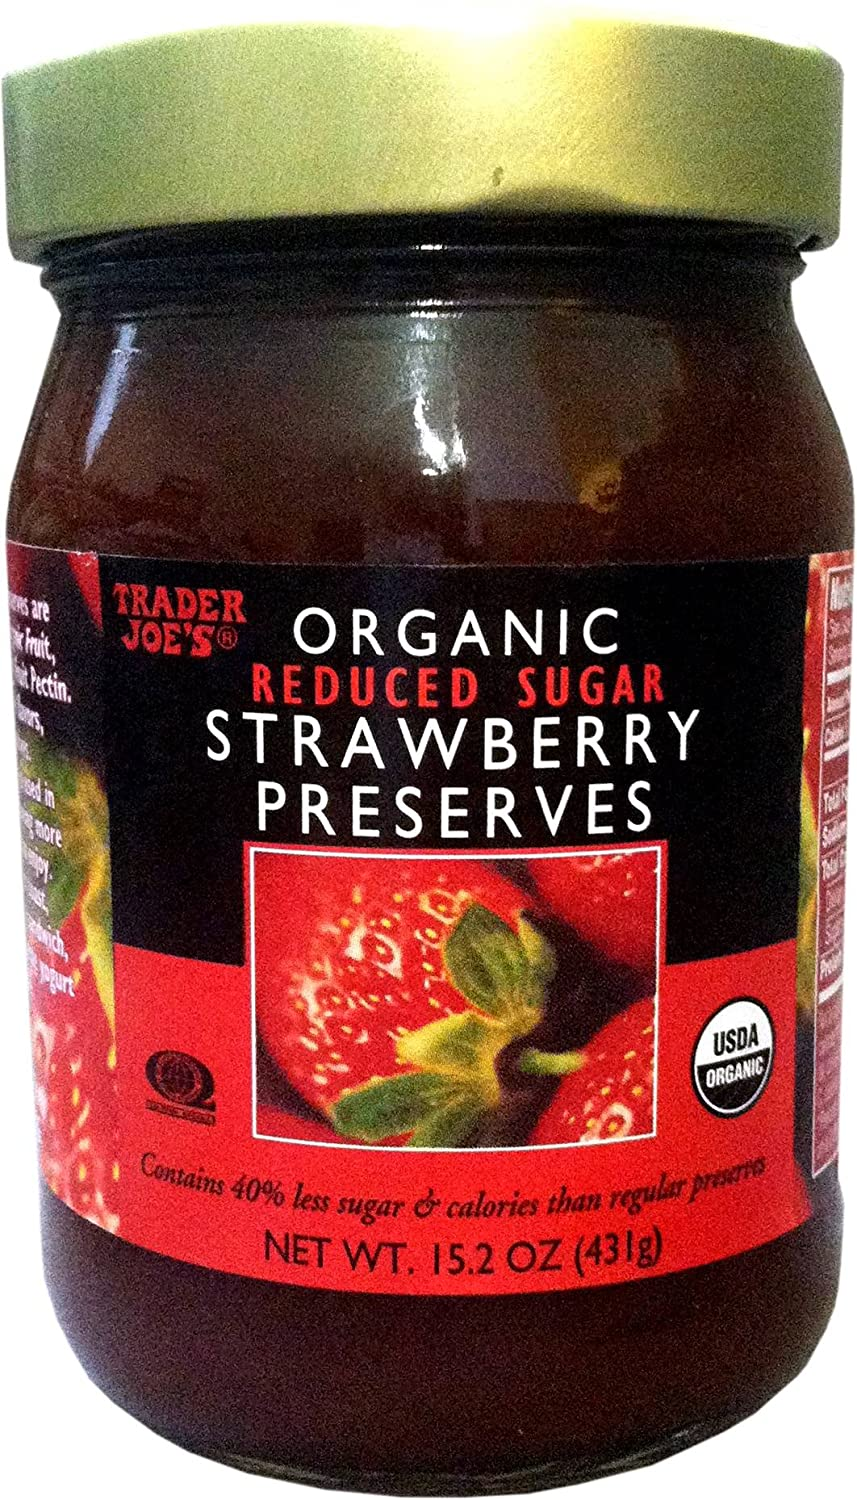 Trader Joe's Organic Max 86% OFF Animer and price revision Preserves Strawberry